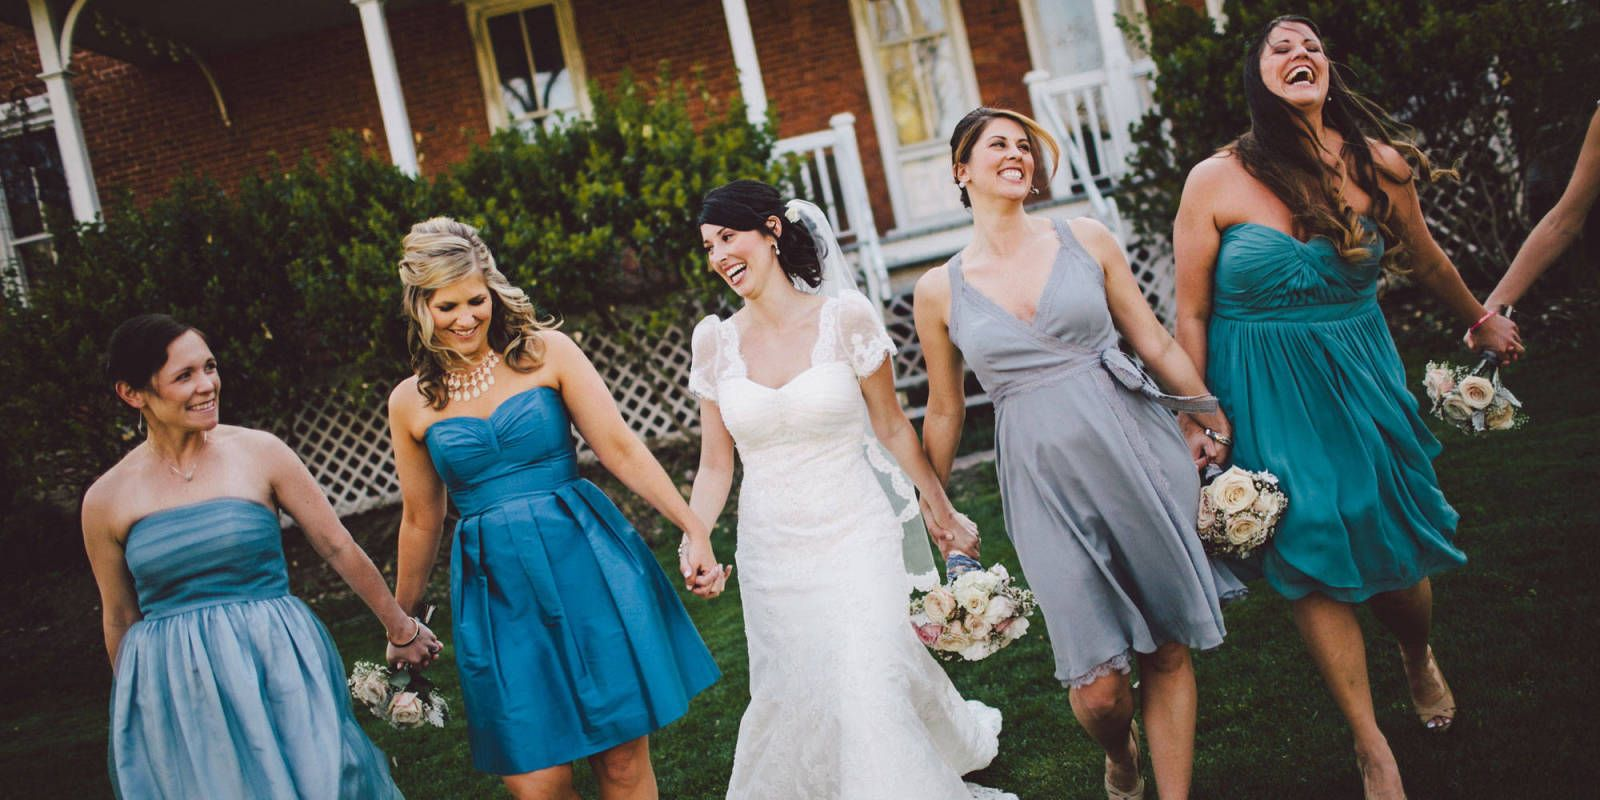 18 adorable photos that prove the best bridesmaids dresses are 15 adorable photos that prove the best bridesmaids dresses are mismatched cosmopolitan ombrellifo Image collections